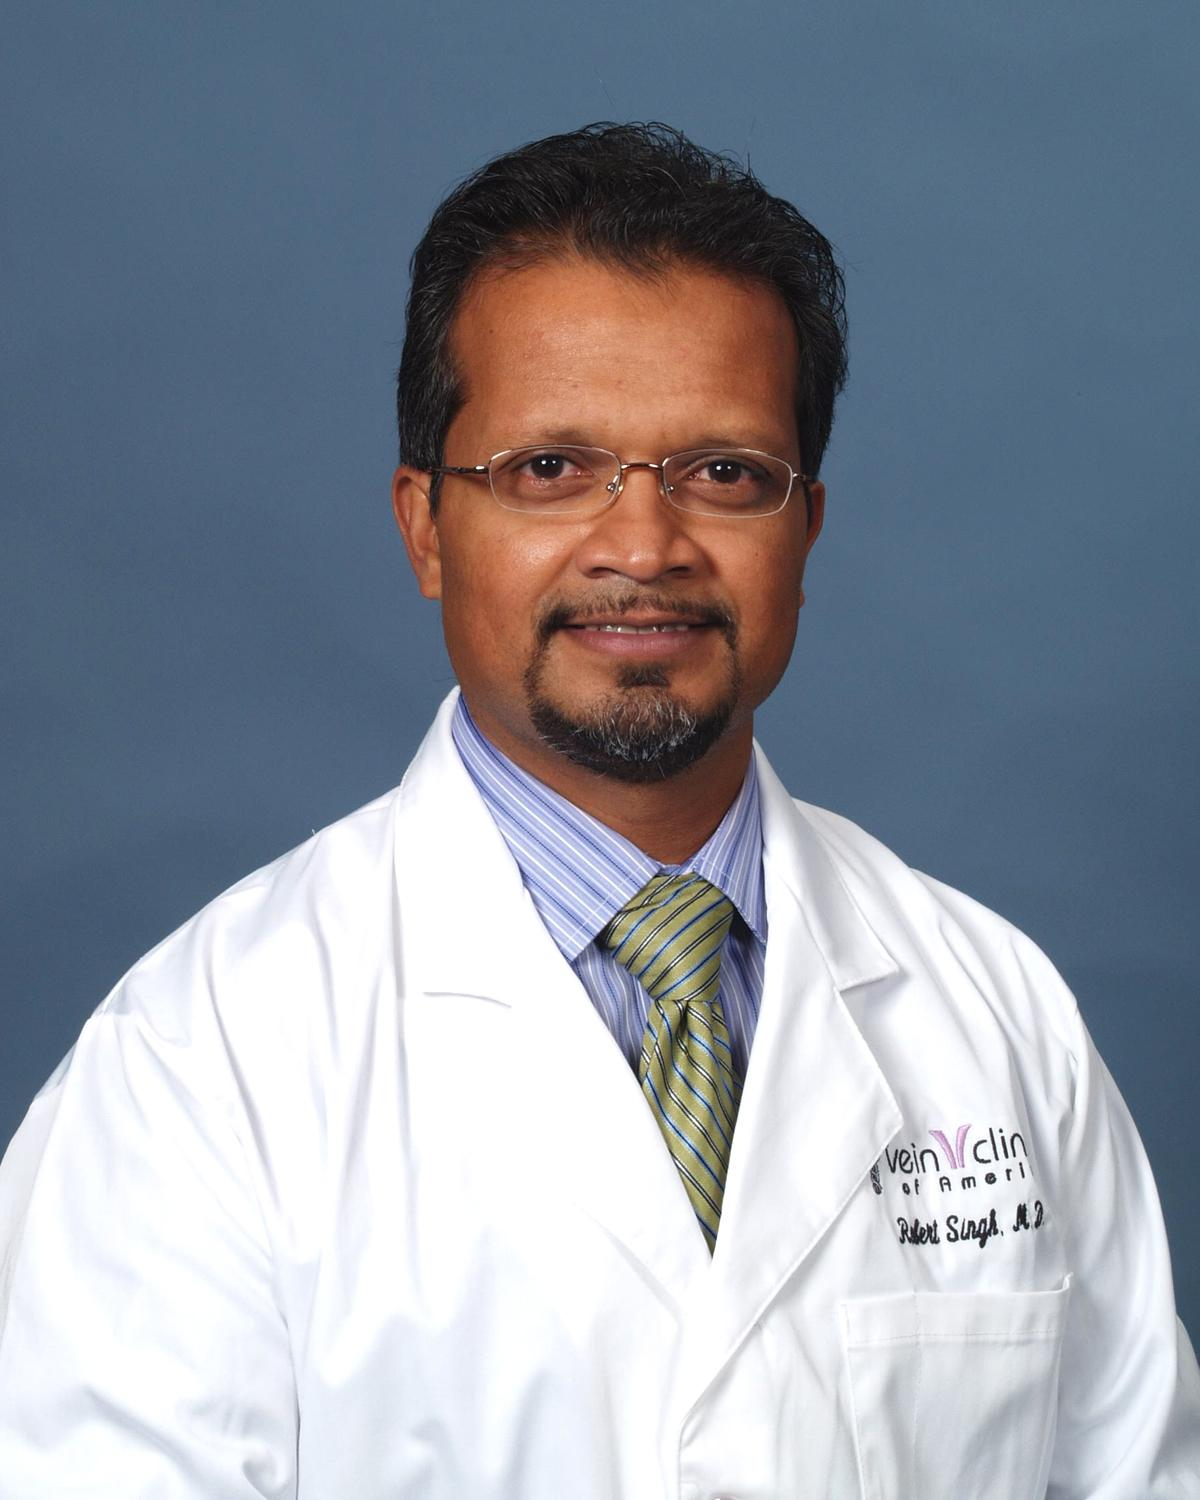 Dr. Singh of Vein Clinics of America